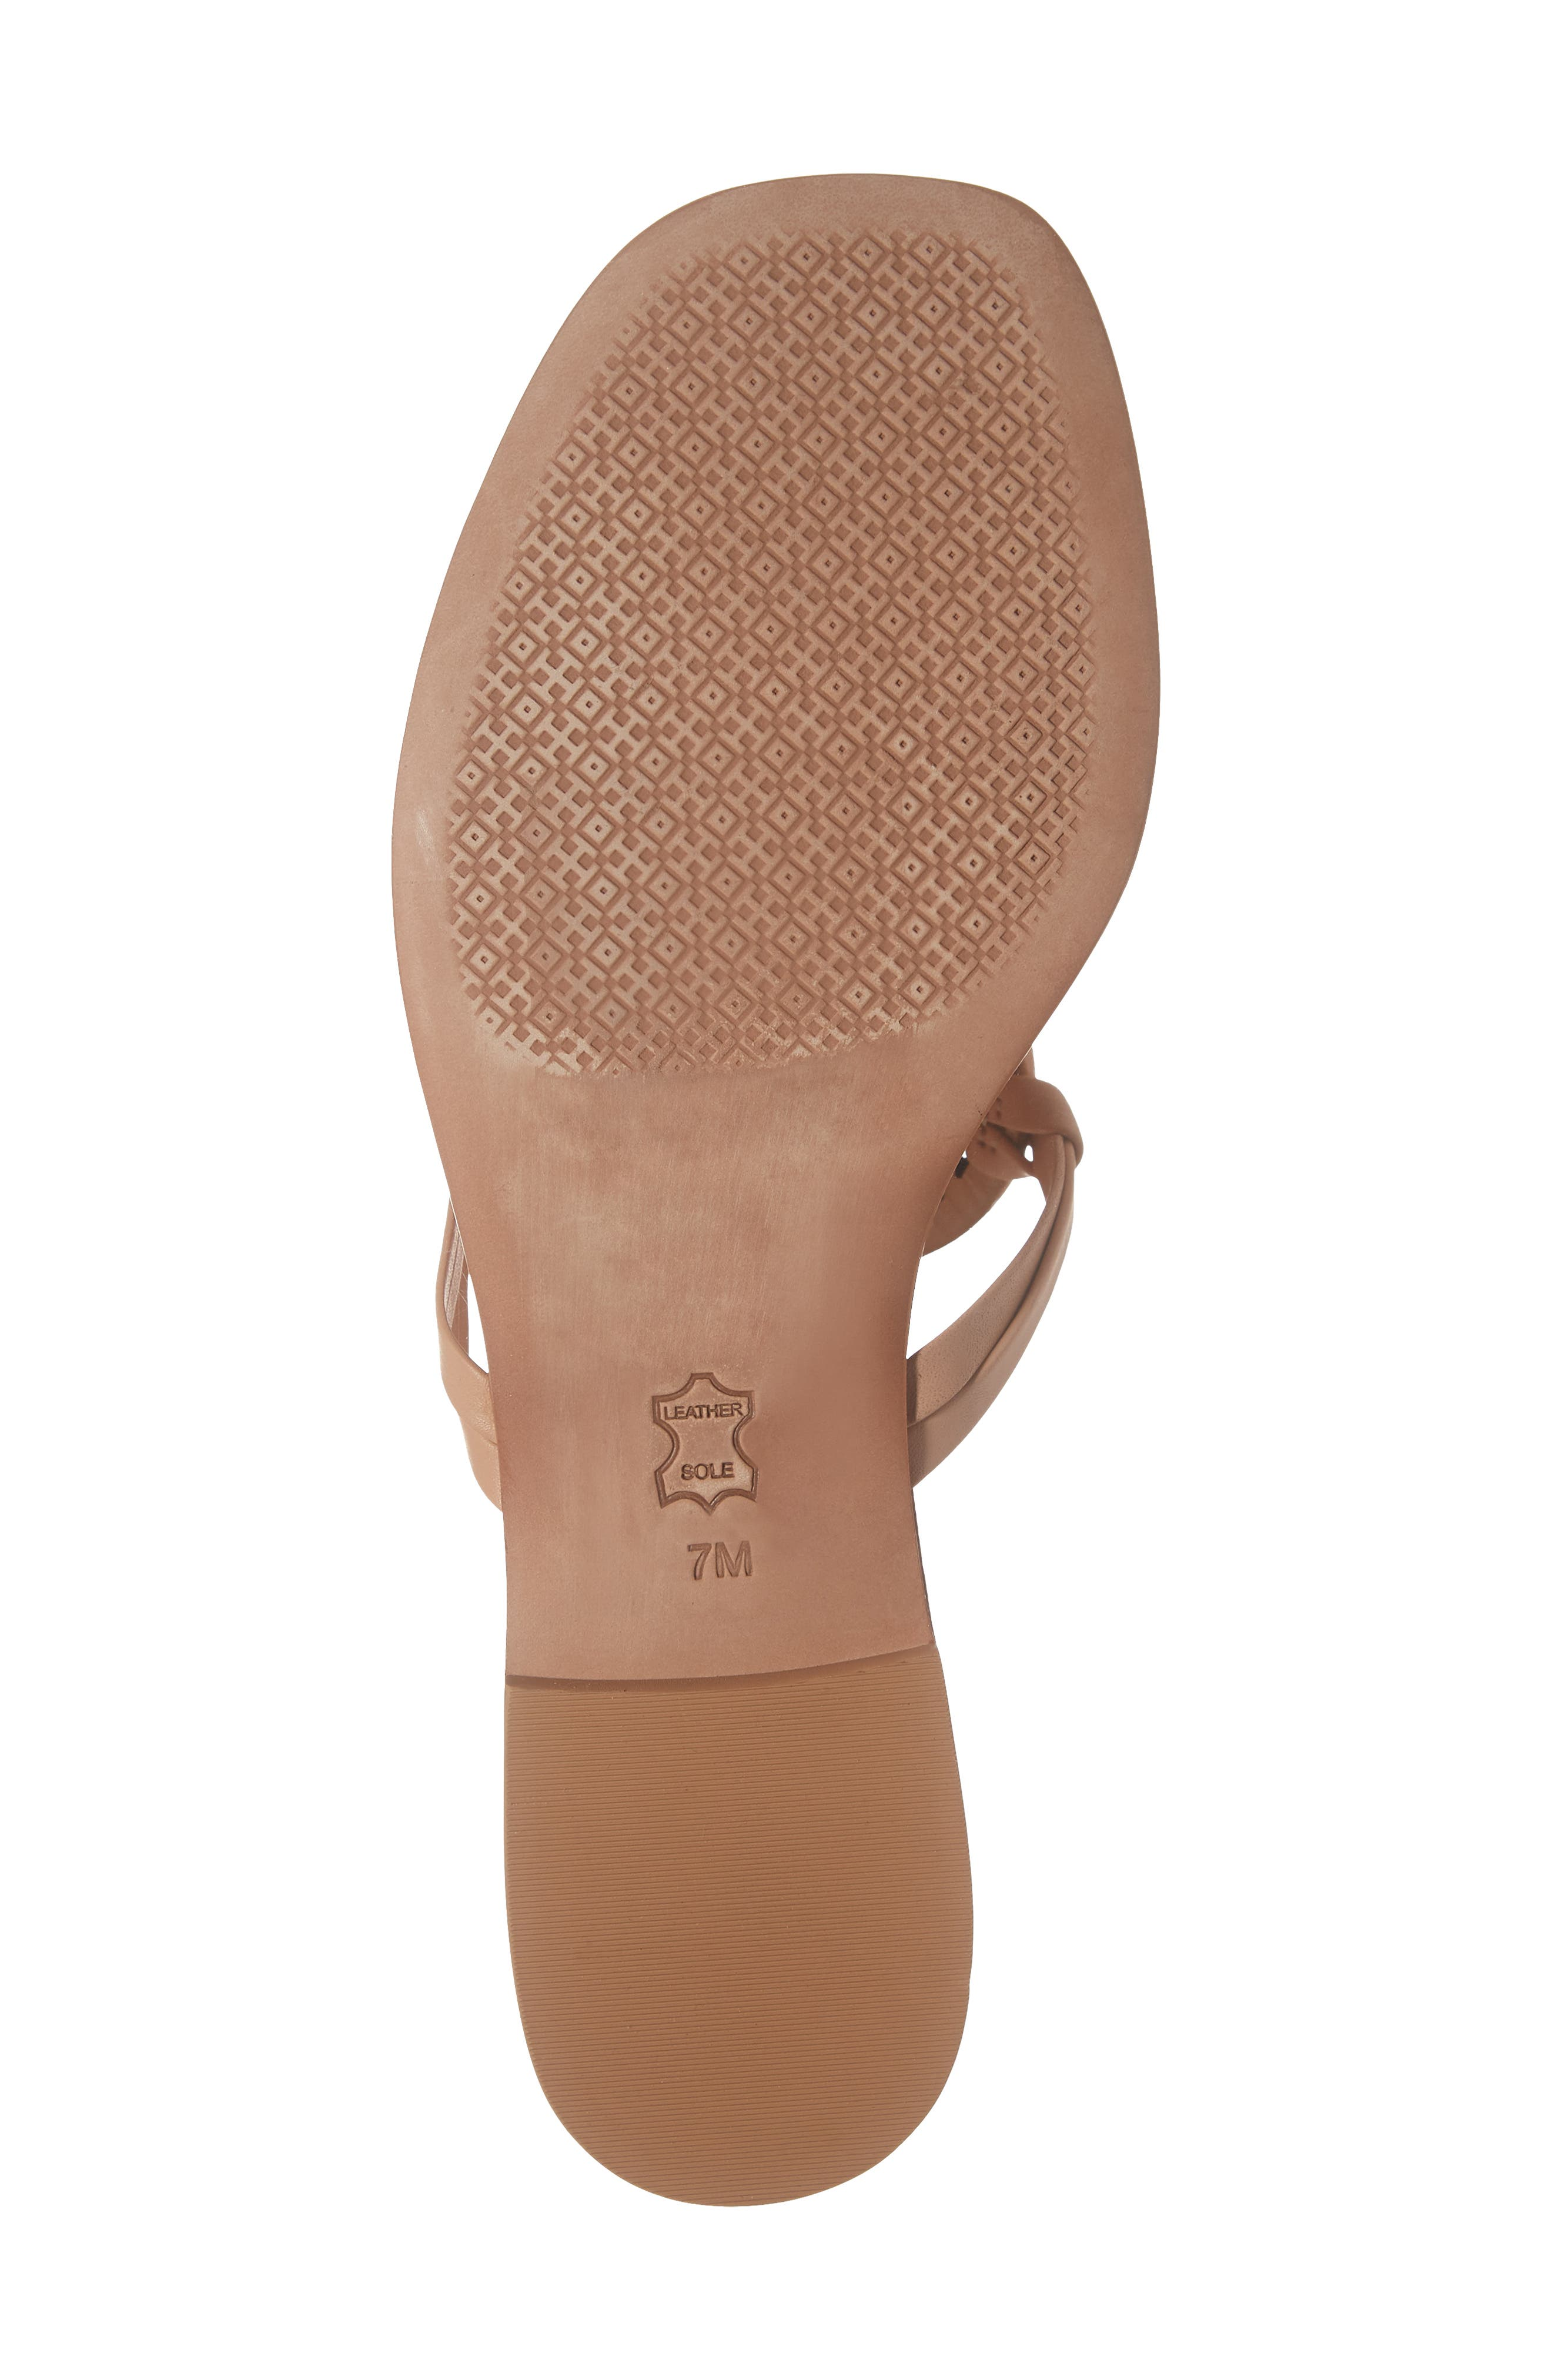 TORY BURCH, Miller Square Toe Thong Sandal, Alternate thumbnail 6, color, NATURAL VACHETTA